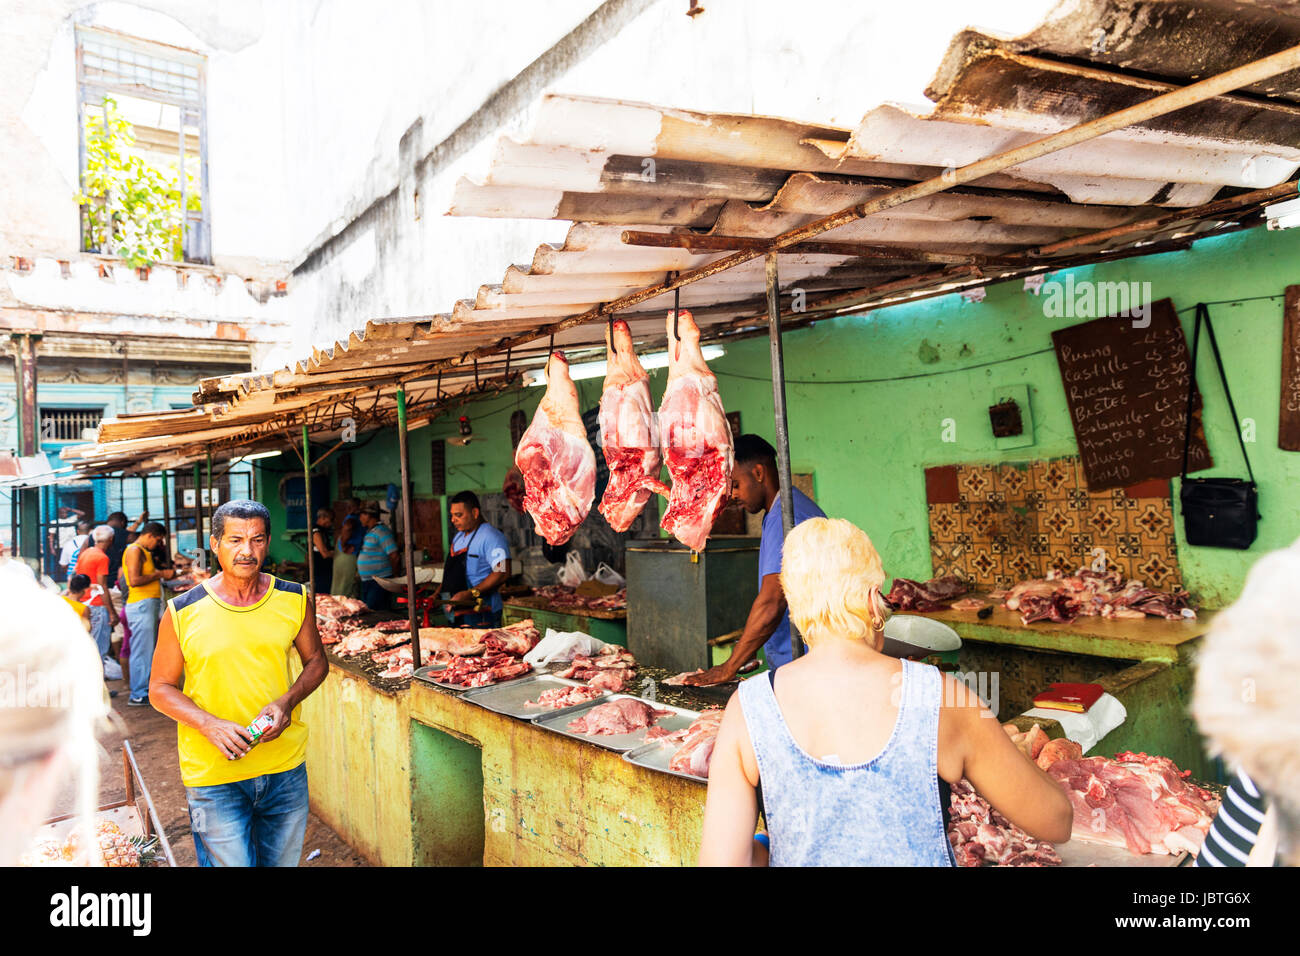 meat market stock images - photo #3